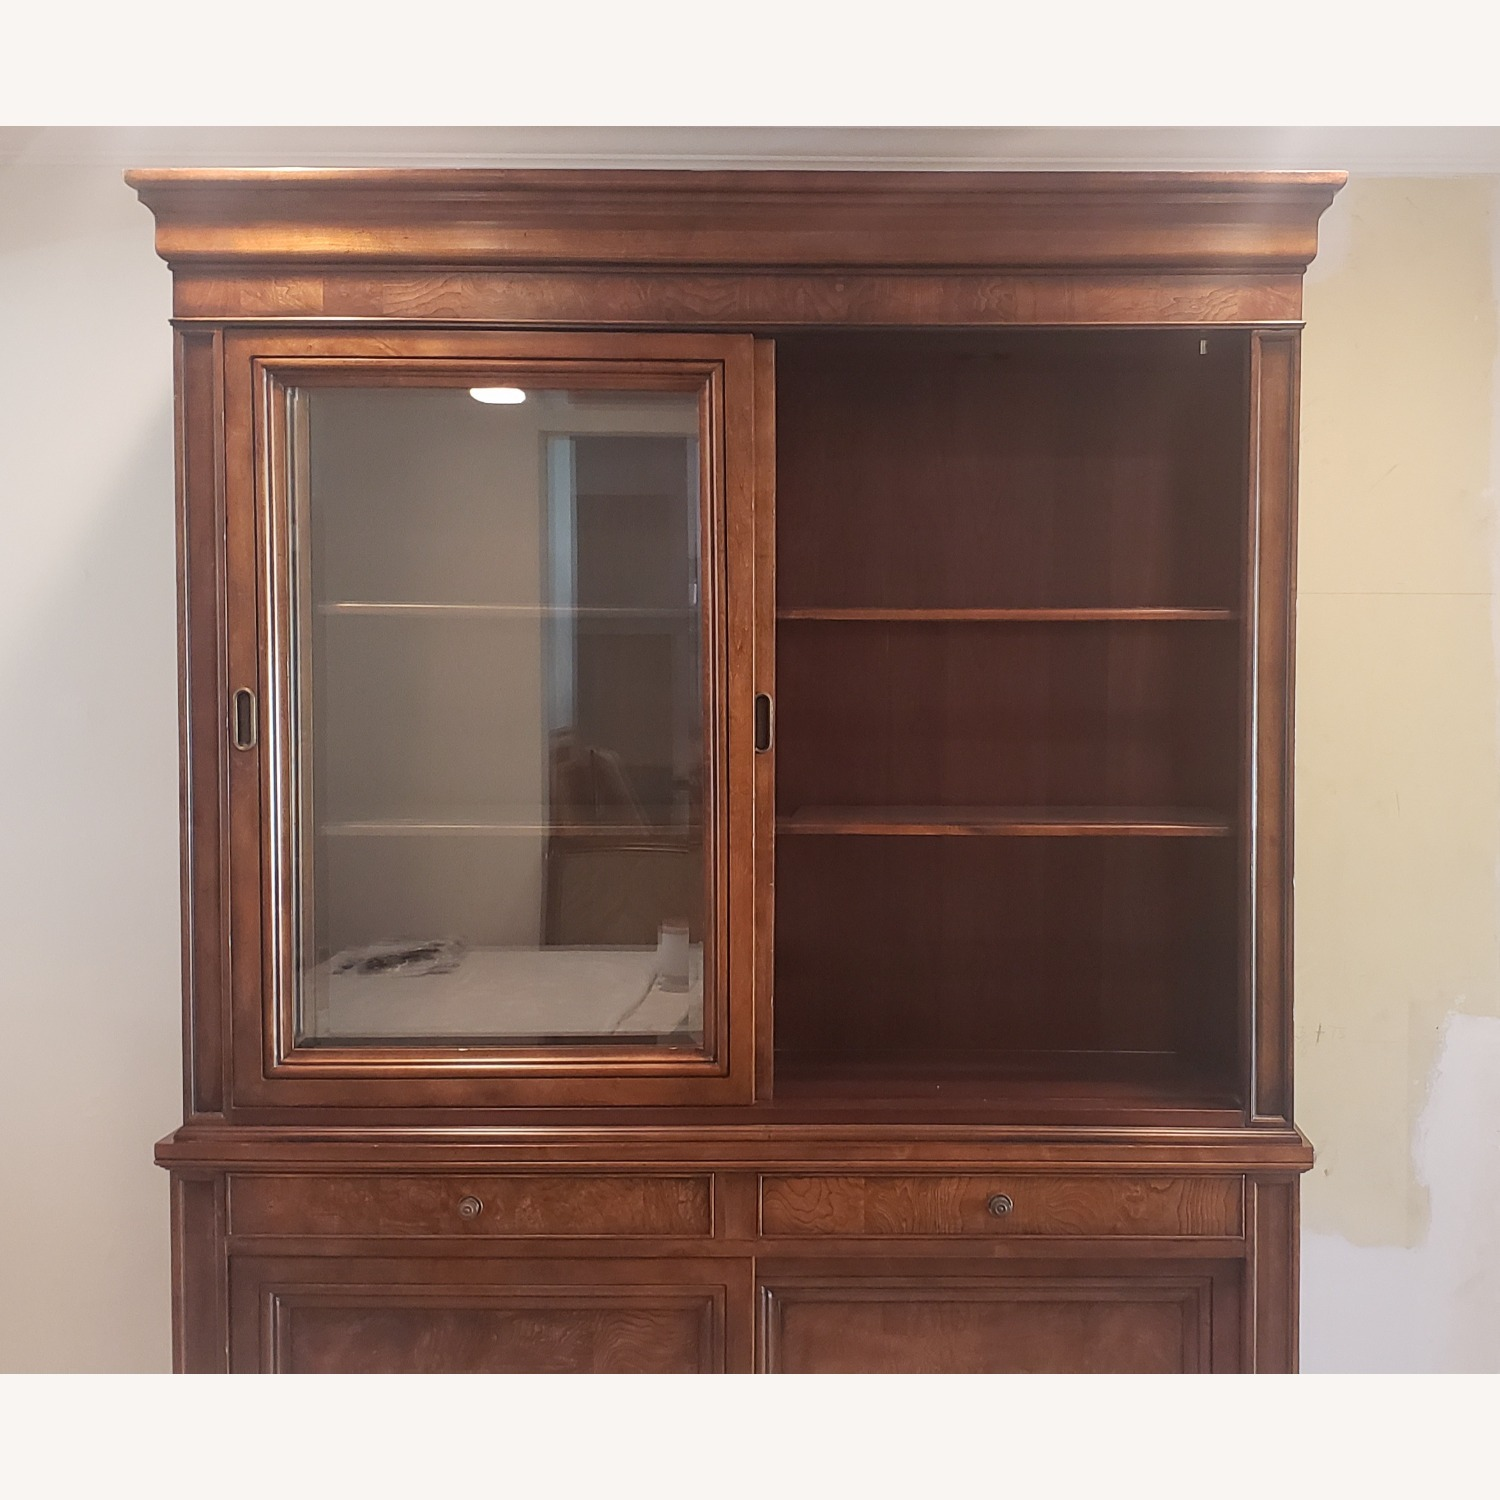 Ethan Allen Townhouse China Cabinet - image-1